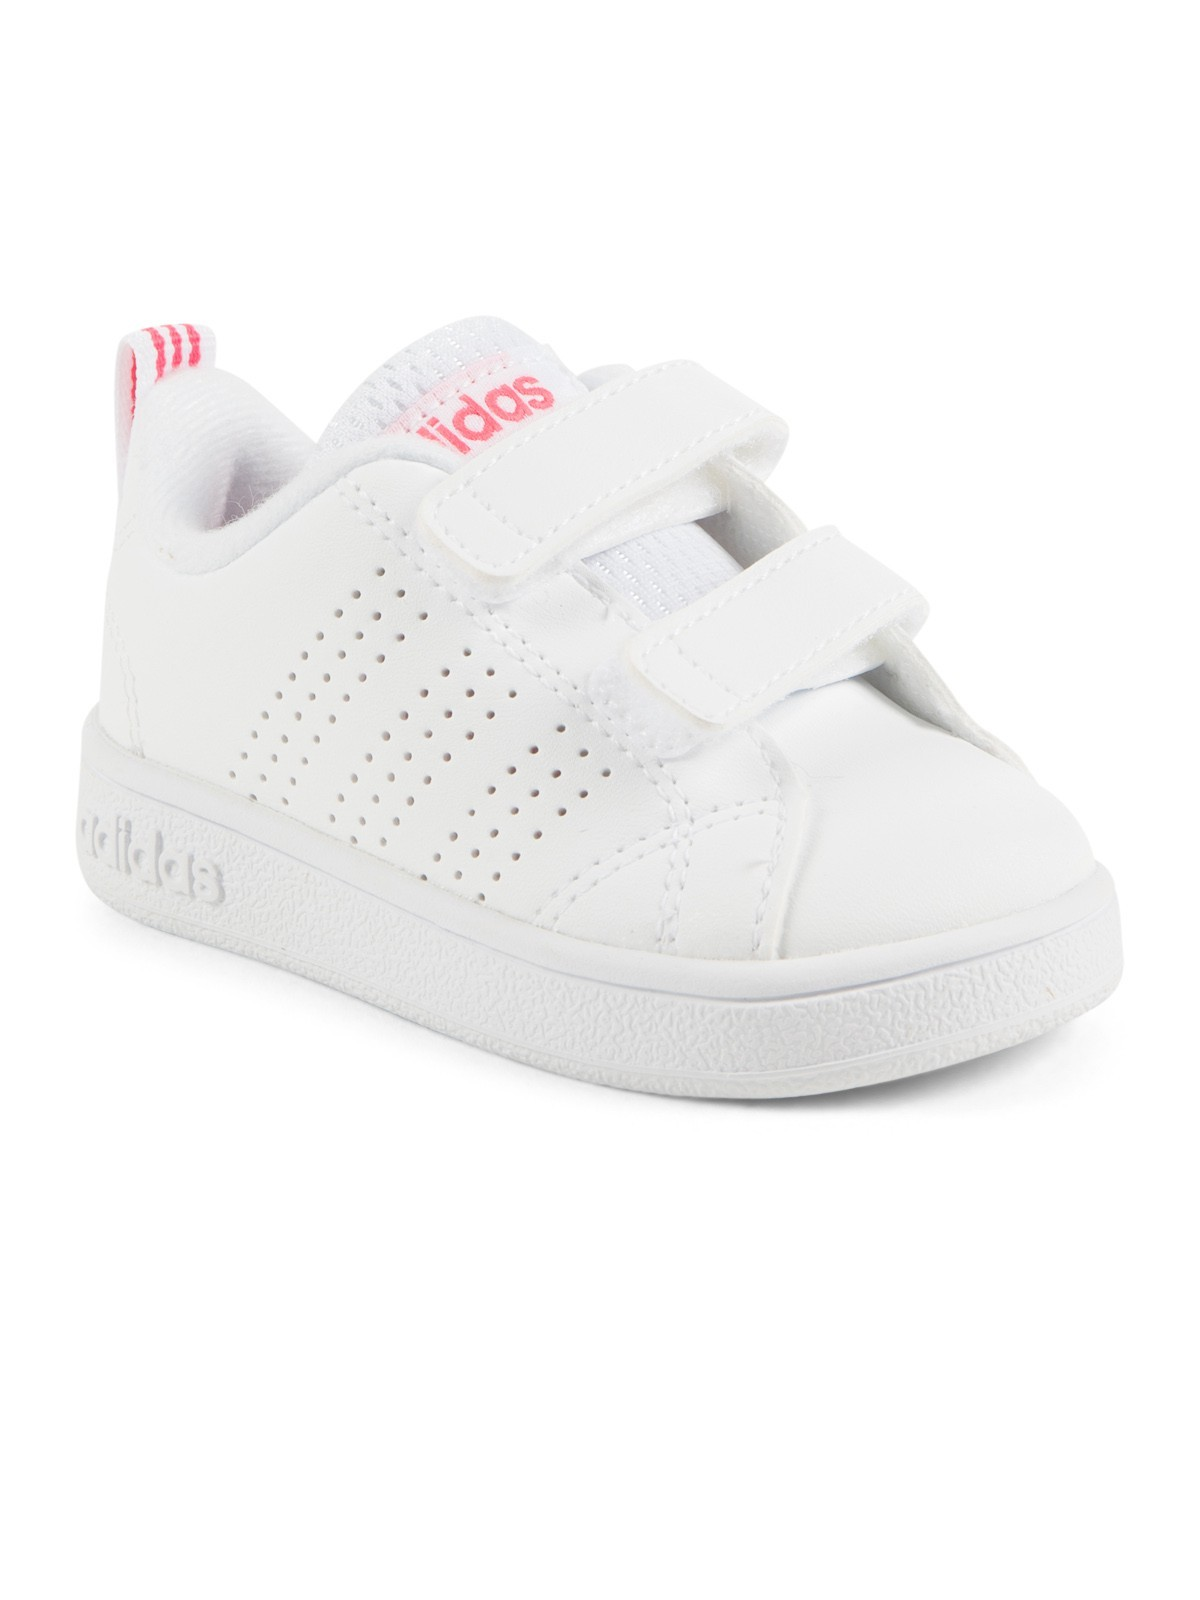 cheap price various colors shop Basket Adidas fille blanc/rose (19-23) - DistriCenter